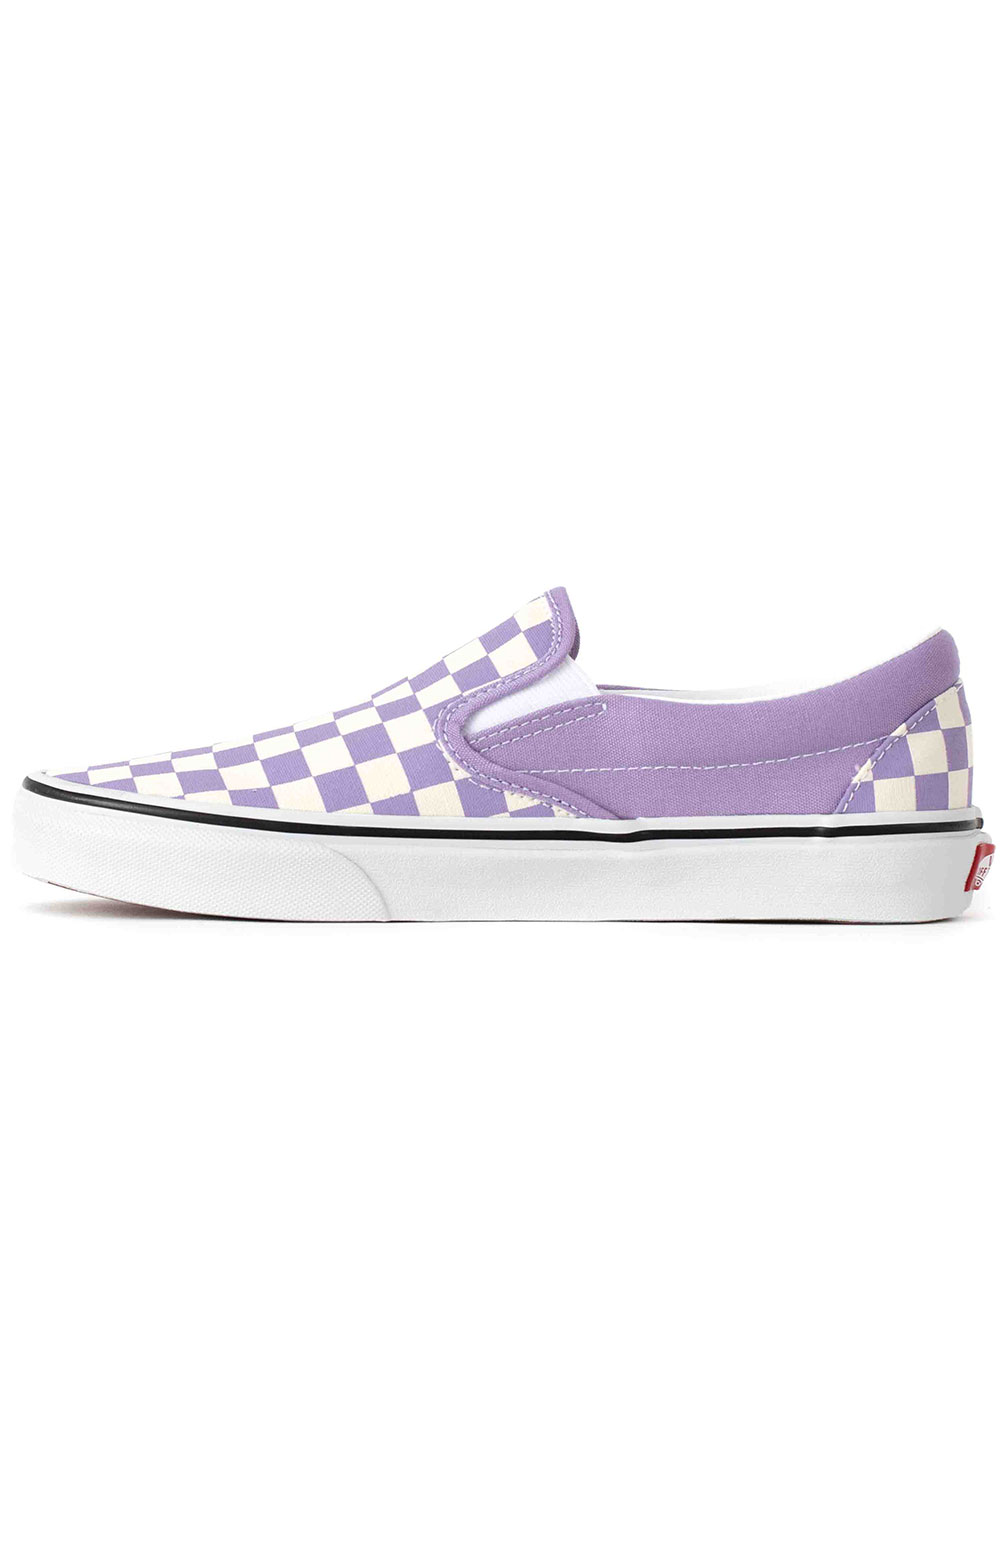 Checkerboard Classic Slip-On Shoes - Chalk Violet  4